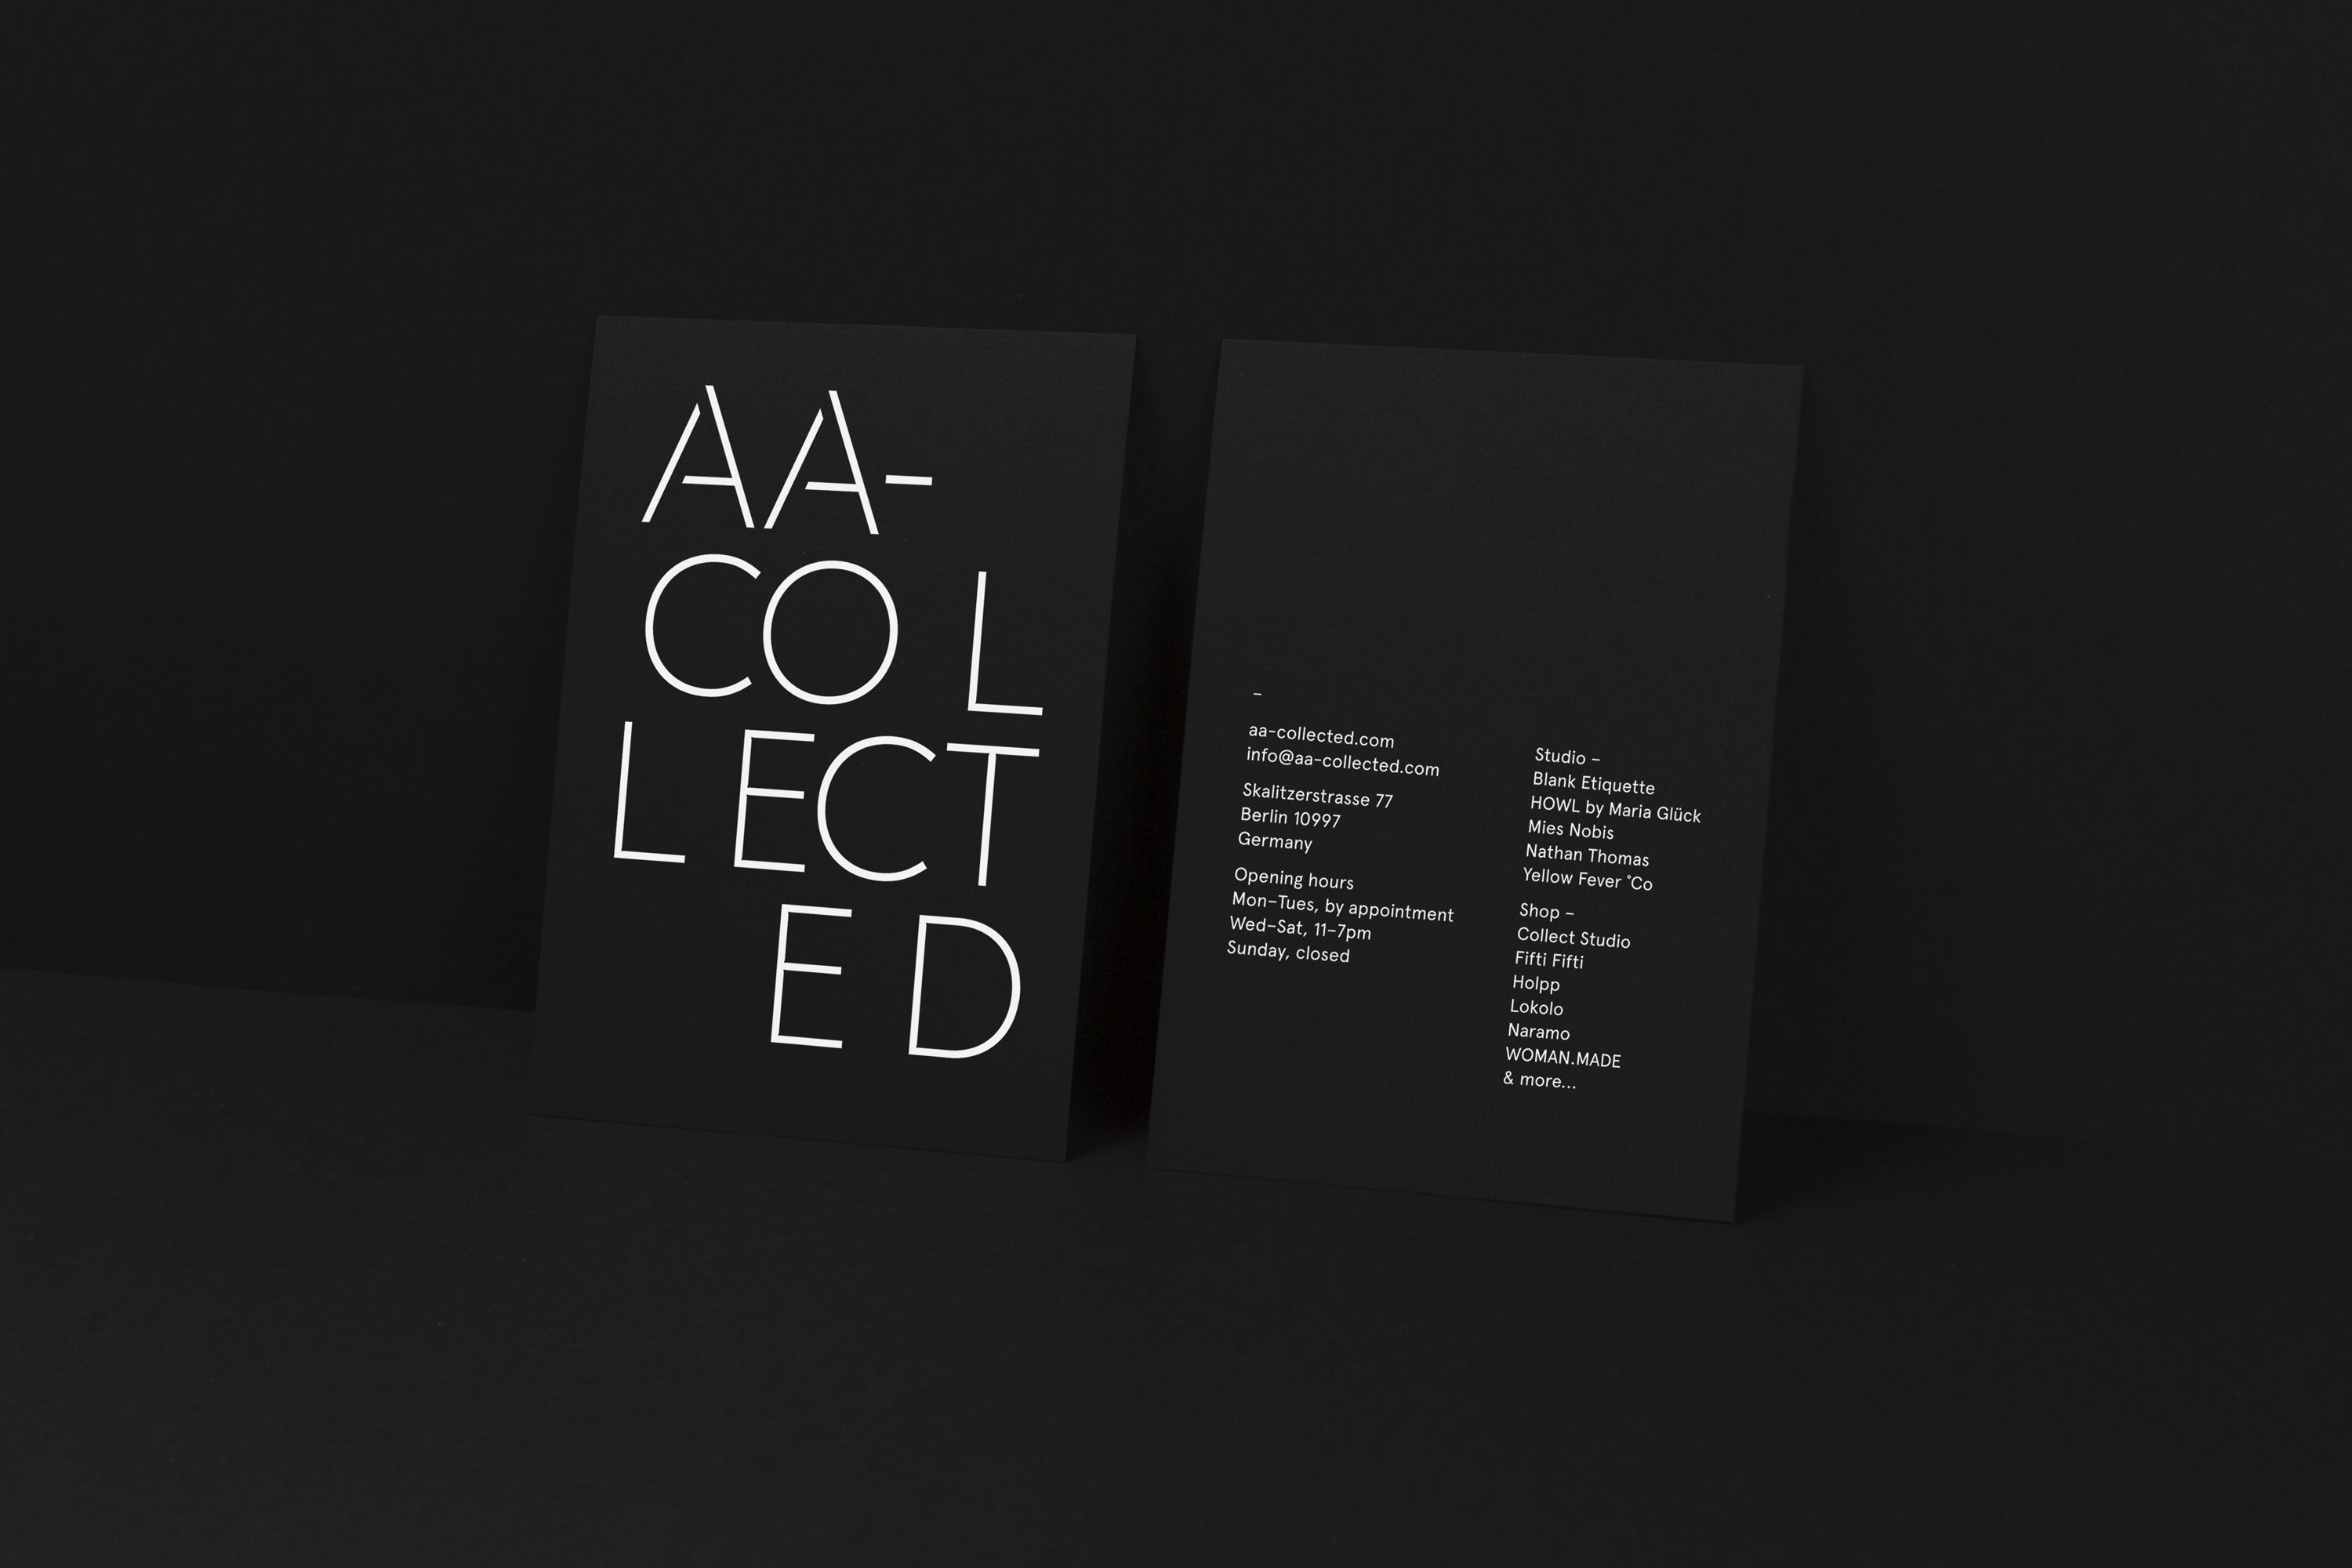 DITTMAR_aa-collected_A6-cards